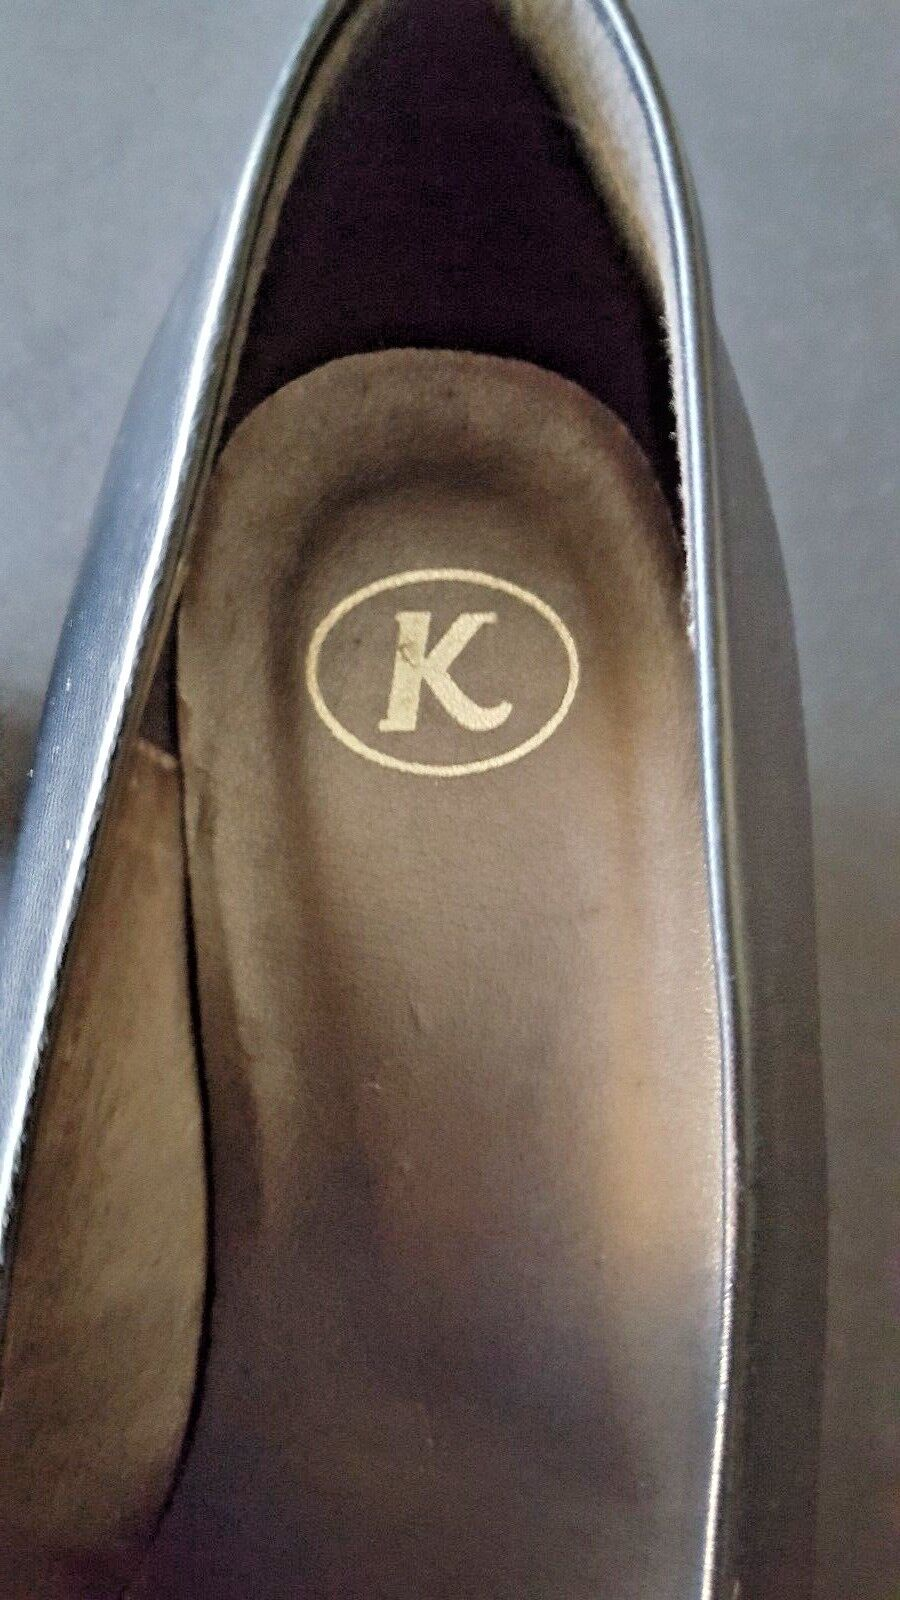 K taille Nous Femme Danya Homme 6 Chaussures 4xq7wRP7Z